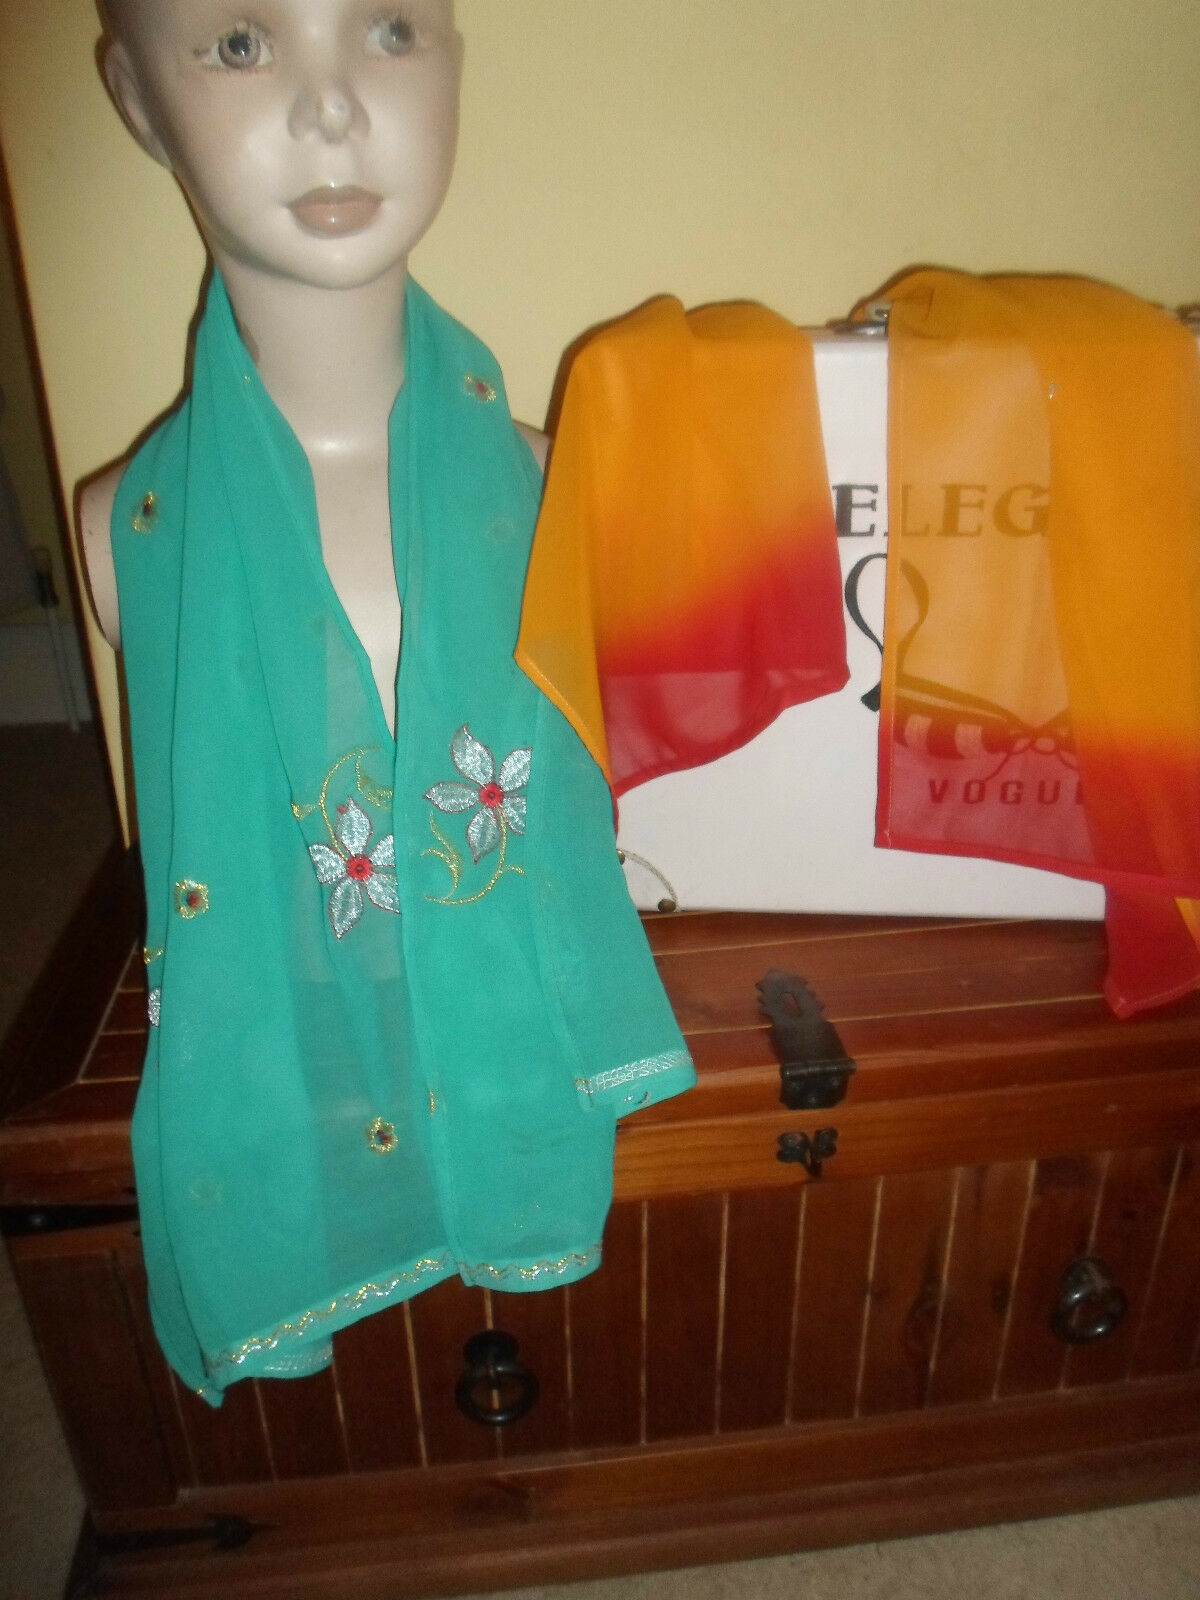 2 NEW Mixed Fibre Ladies Scarves 1 x Turquoise 1 x Orange+Red Gift Idea #47